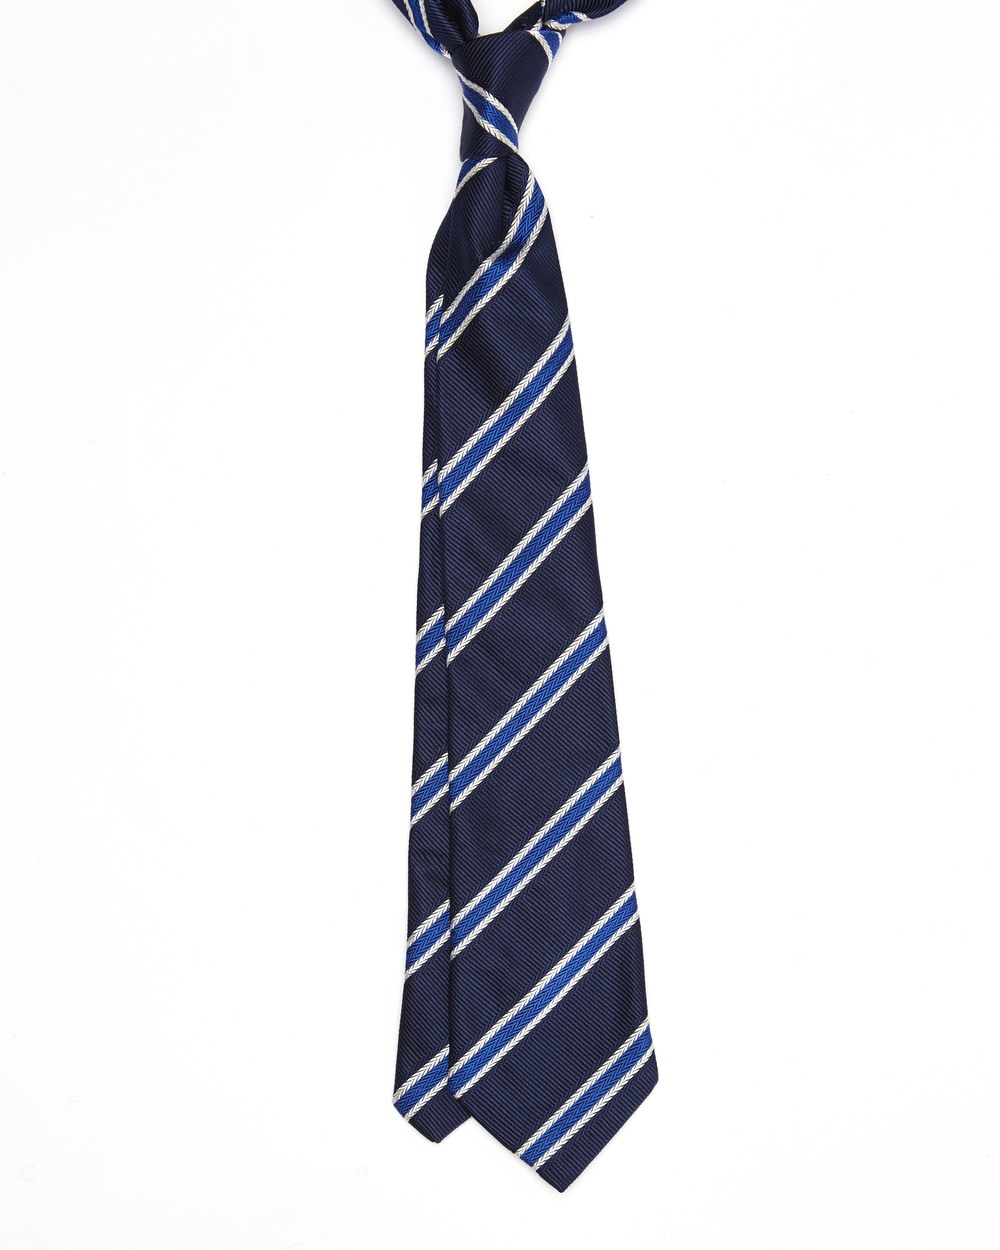 Elroy Tie | 100% Silk Jacquard Herringbone Stripe | Colour: Navy, Colbolt Blue & White